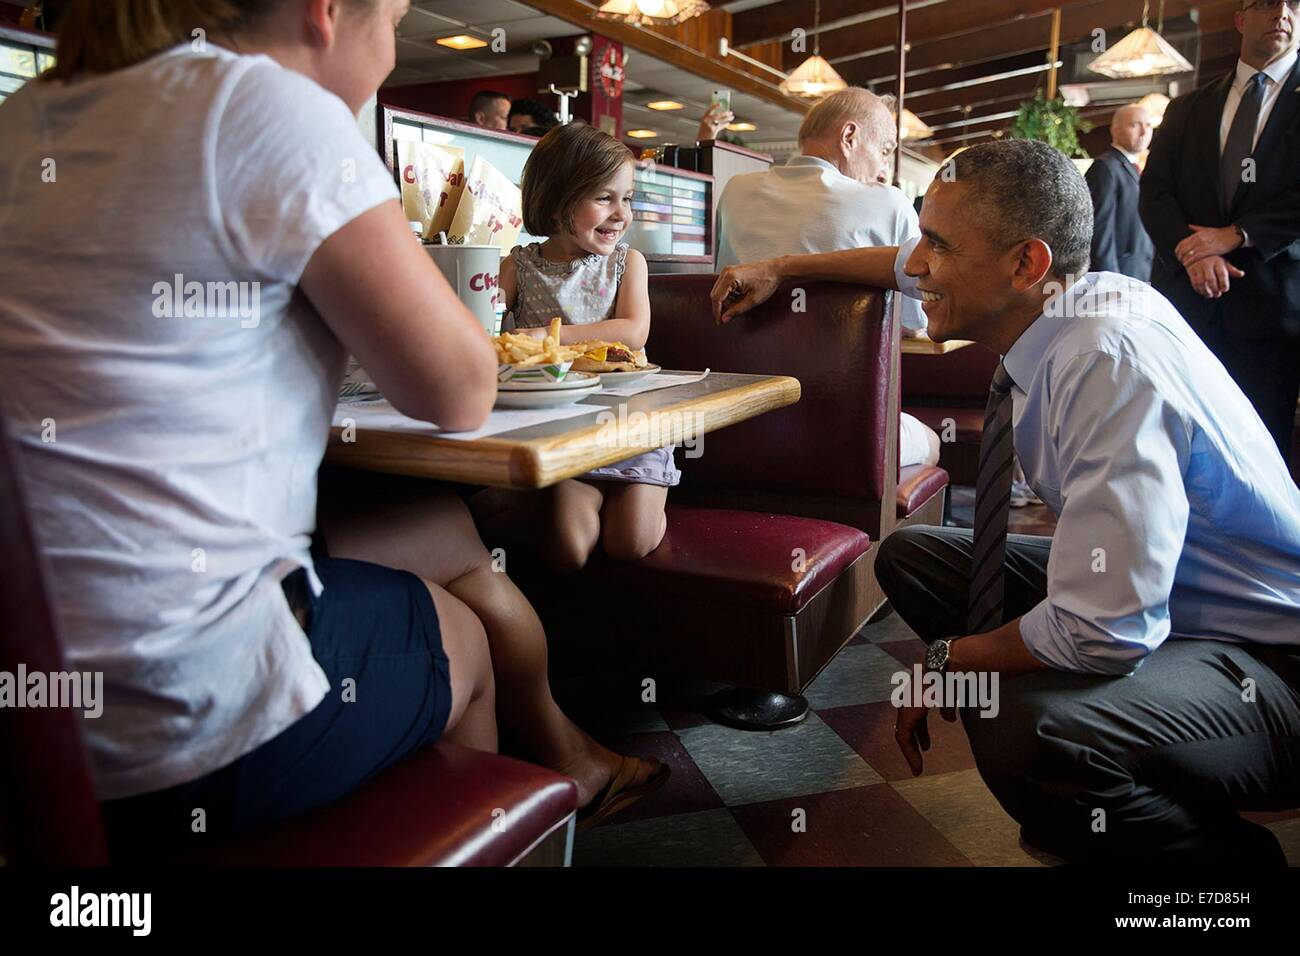 US President Barack Obama talks with a little girl at the Charcoal Pit restaurant July 17, 2014 in Wilmington, Delaware. - Stock Image